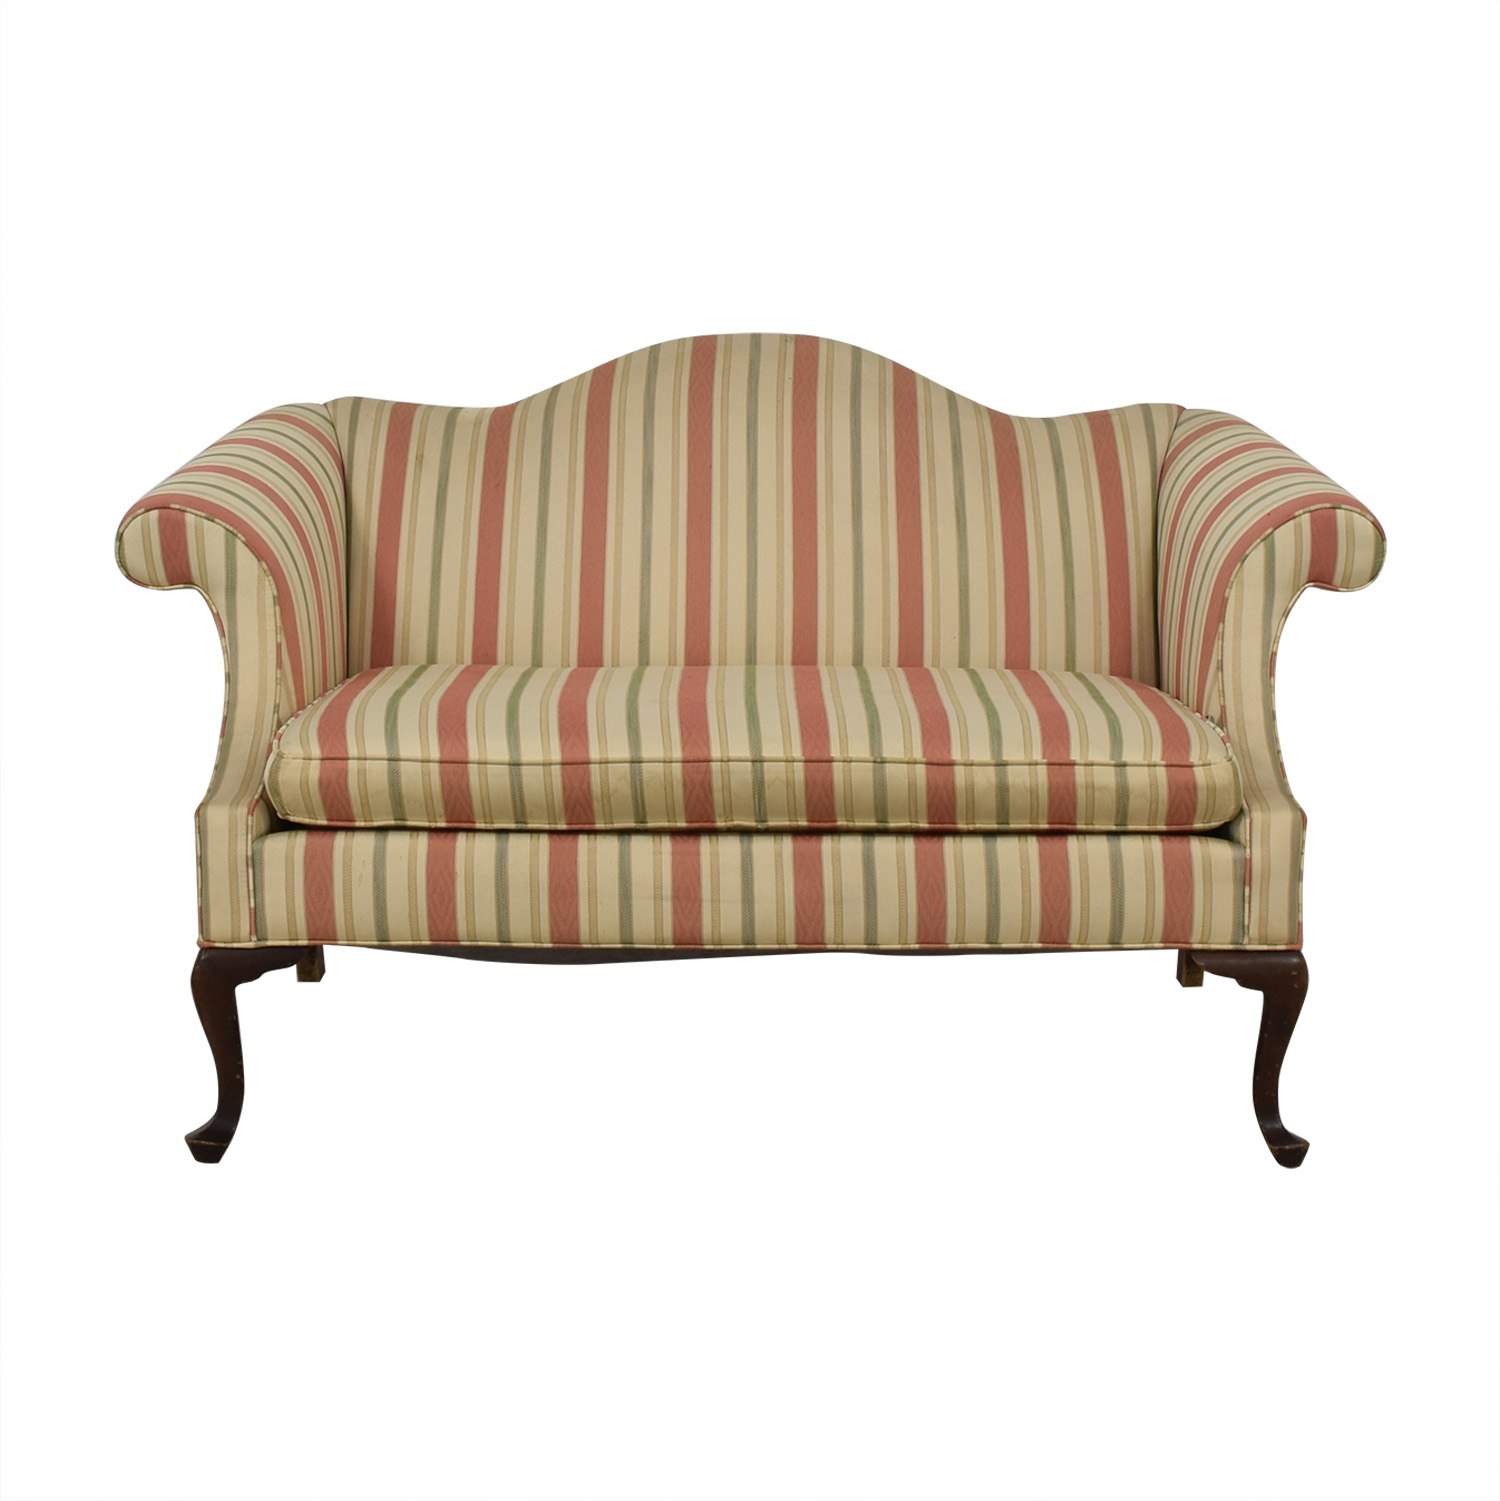 86 Off Ethan Allen Queen Anne Loveseat Sofas